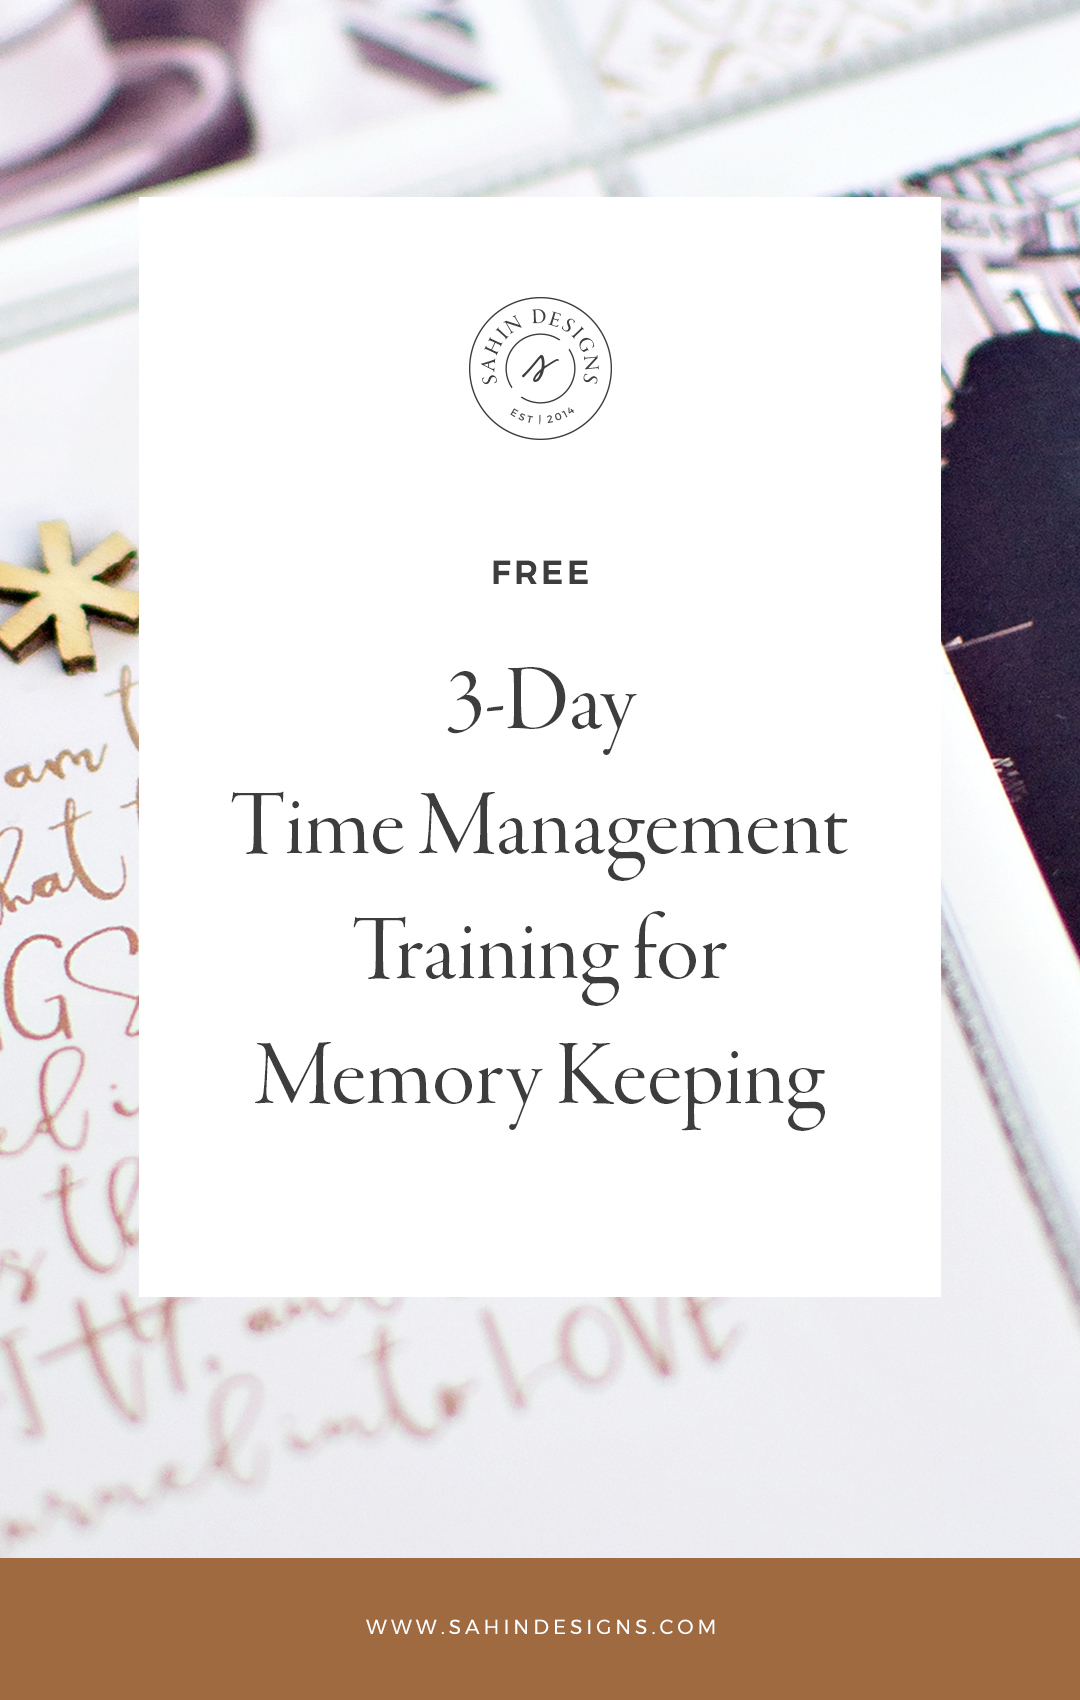 3-Day Time Management Training for Memory Keeping - Sahin Designs